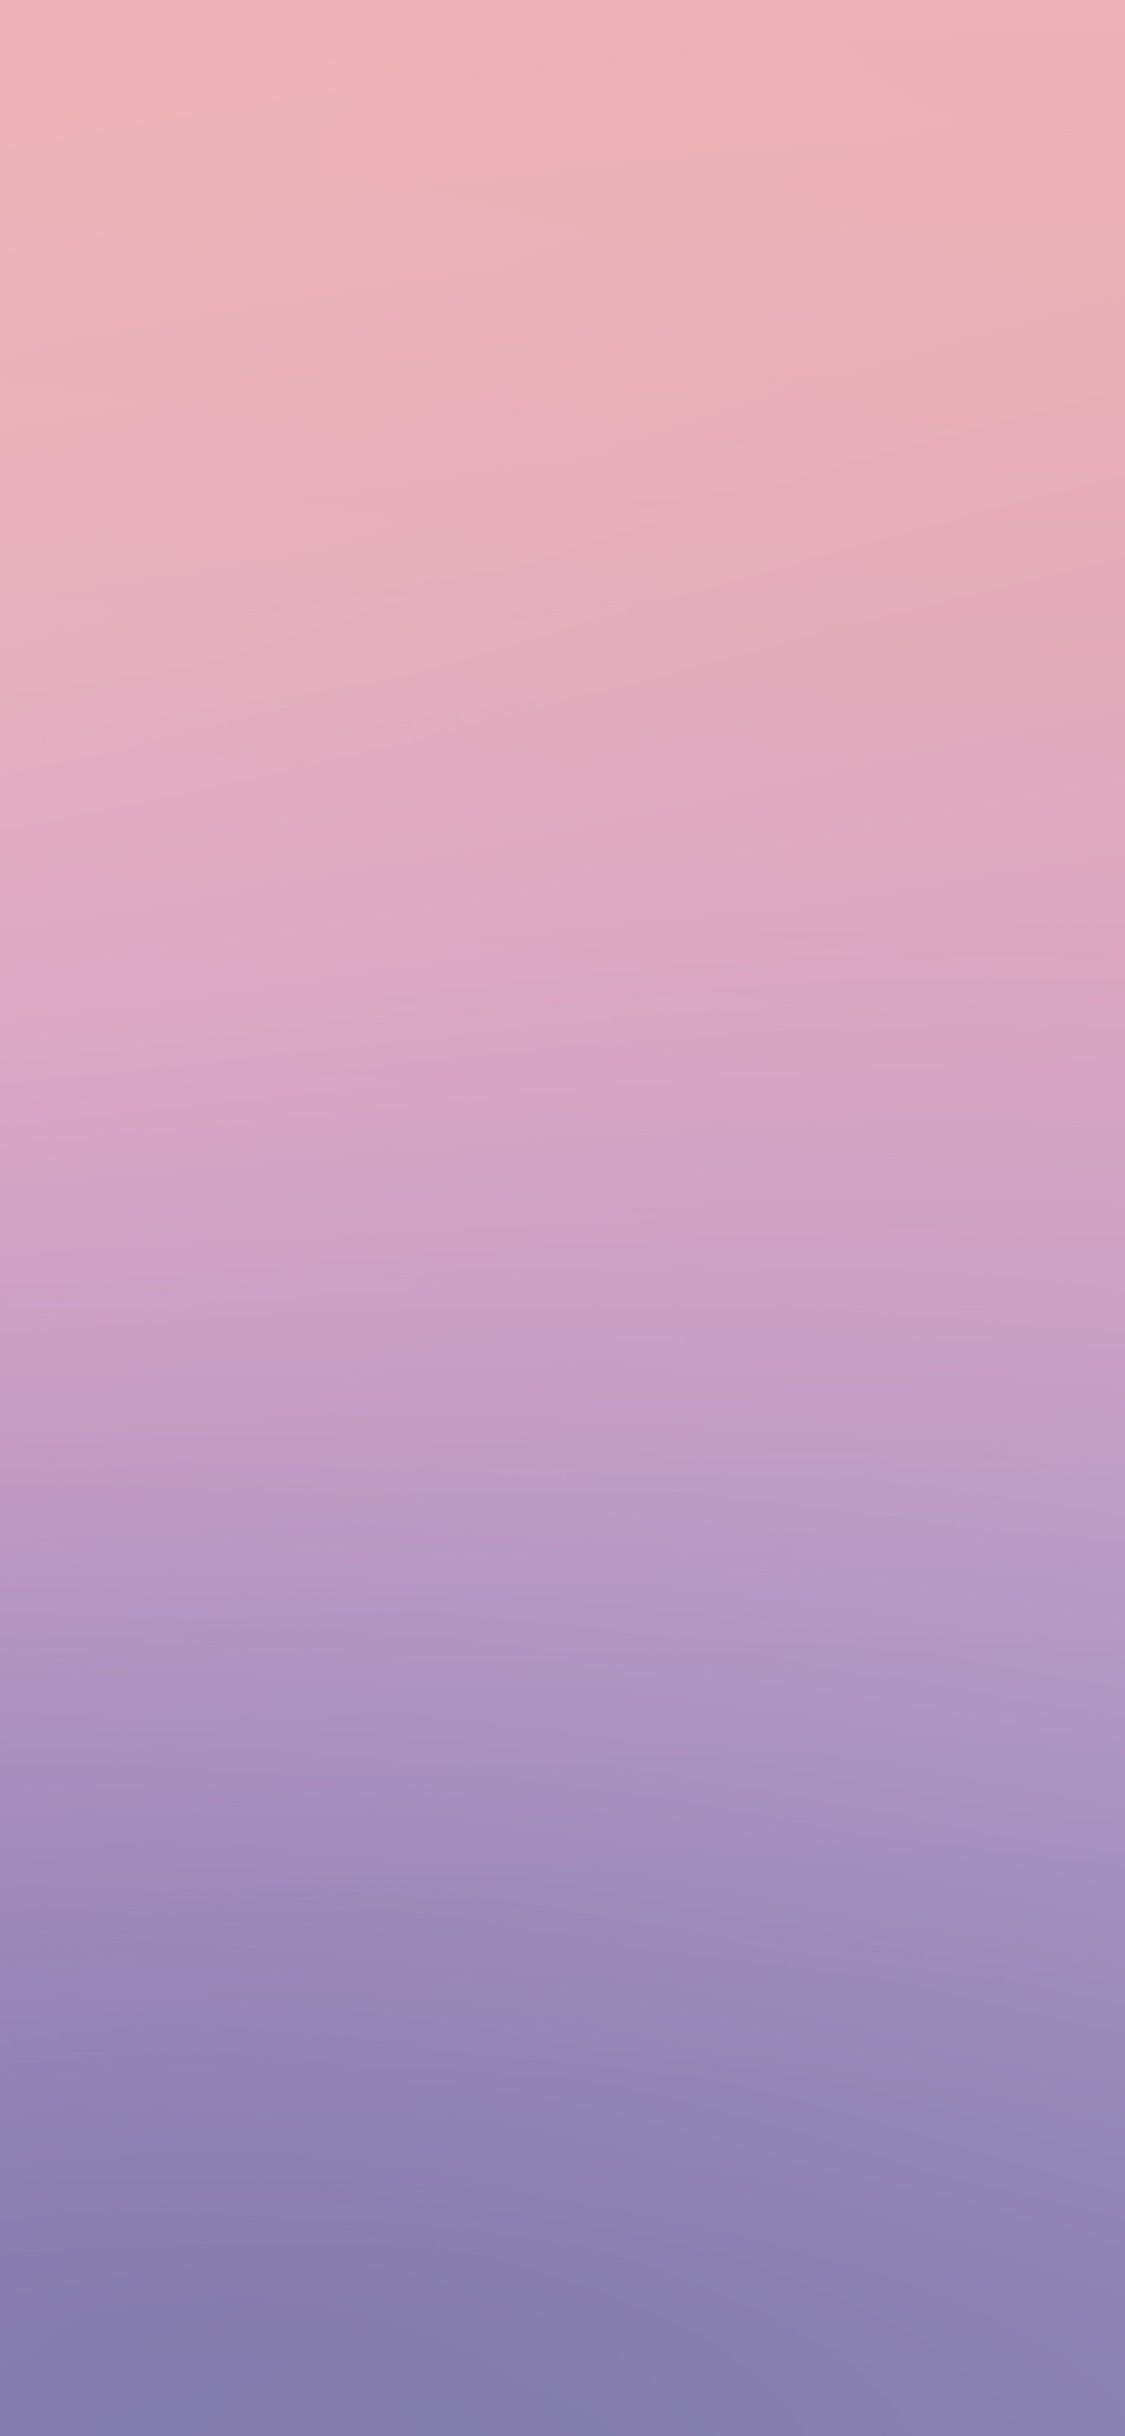 iPhoneXpapers.com-Apple-iPhone-wallpaper-sh53-pink-blue-purple-harmony-gradation-blur